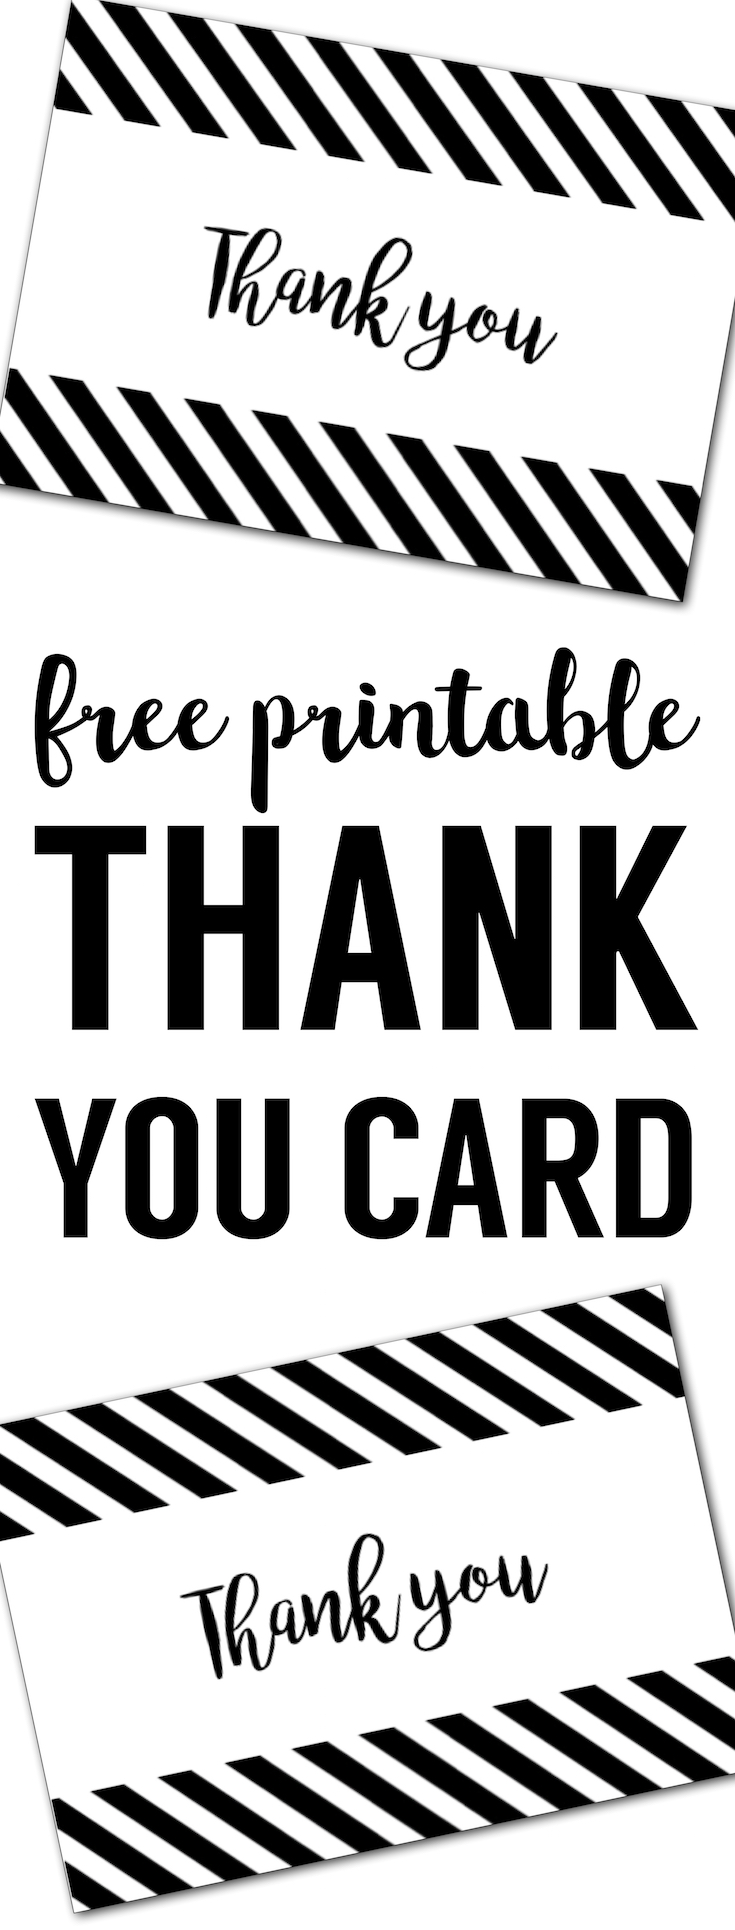 image about Free Printable Black and White Images known as Free of charge Thank Oneself Playing cards Print Cost-free Printable Black and White